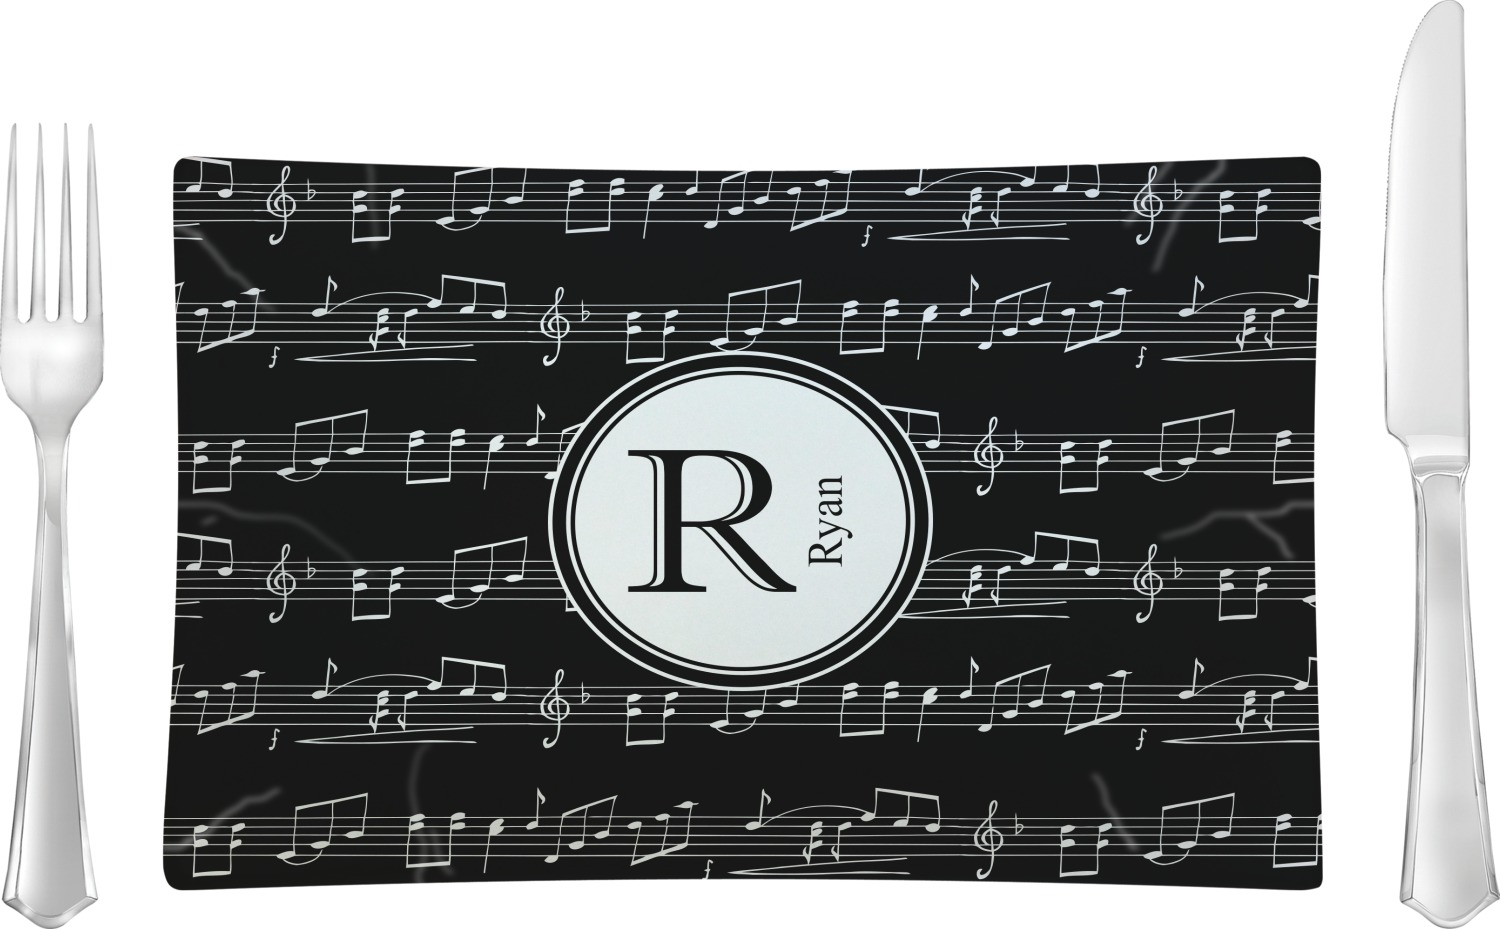 Musical Notes Glass Rectangular Lunch / Dinner Plate - Single or Set (Personalized)  sc 1 st  YouCustomizeIt & Musical Notes Glass Rectangular Lunch / Dinner Plate - Single or Set ...